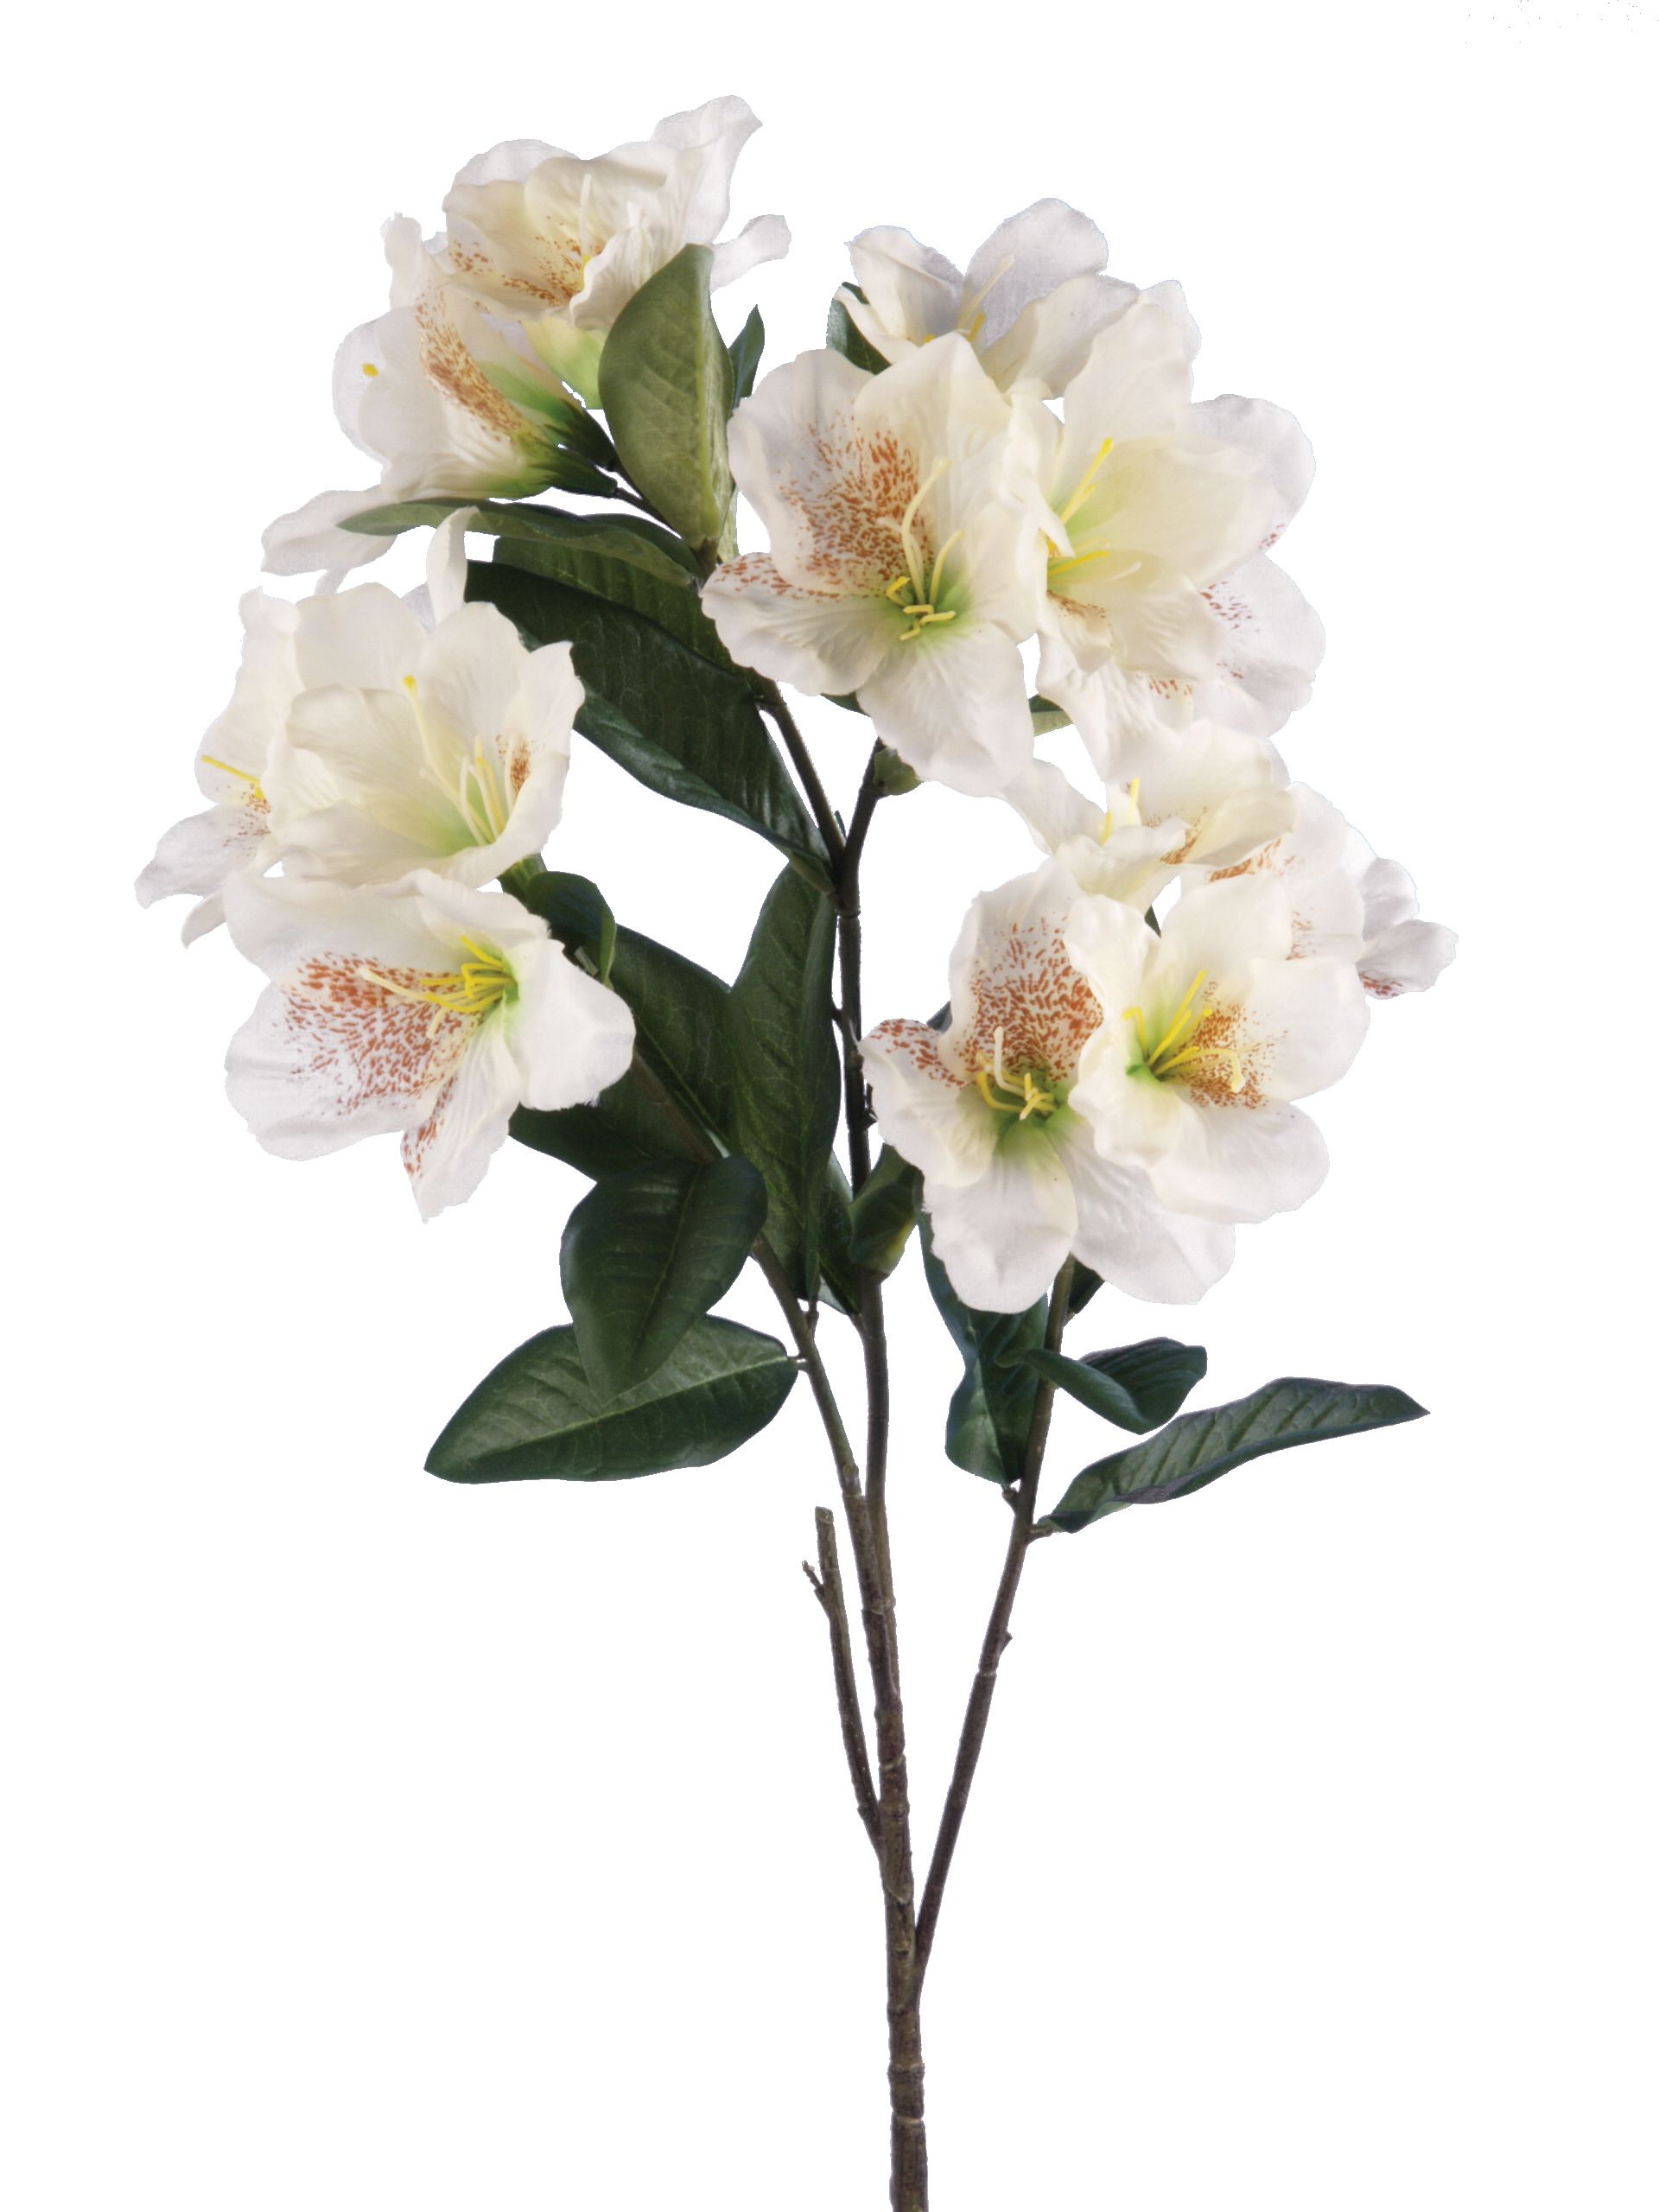 Linea Cream Rhododendron single stem